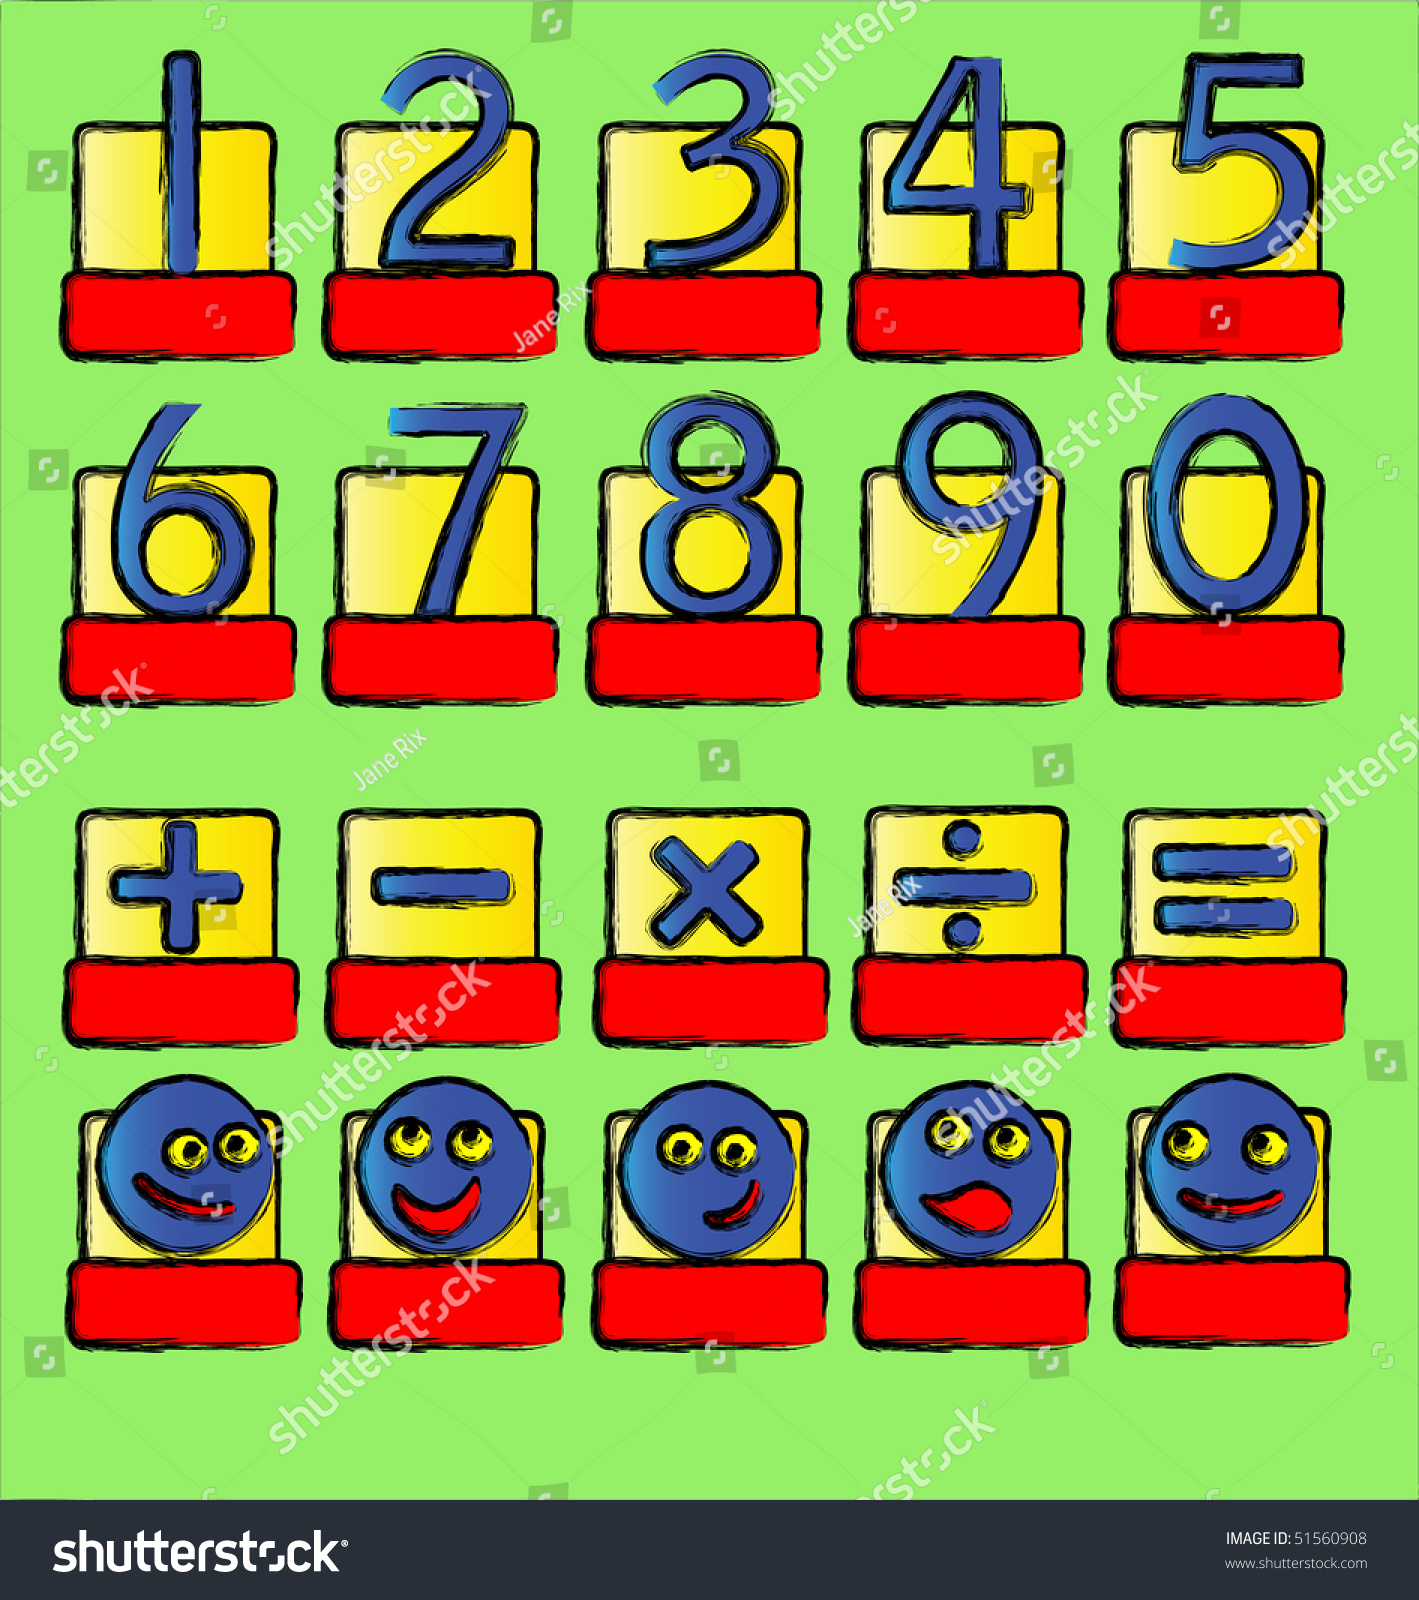 Vector illustration numbers mathematical symbols smilies stock a vector illustration of numbers and mathematical symbols and smilies a complete alphabet also available biocorpaavc Gallery